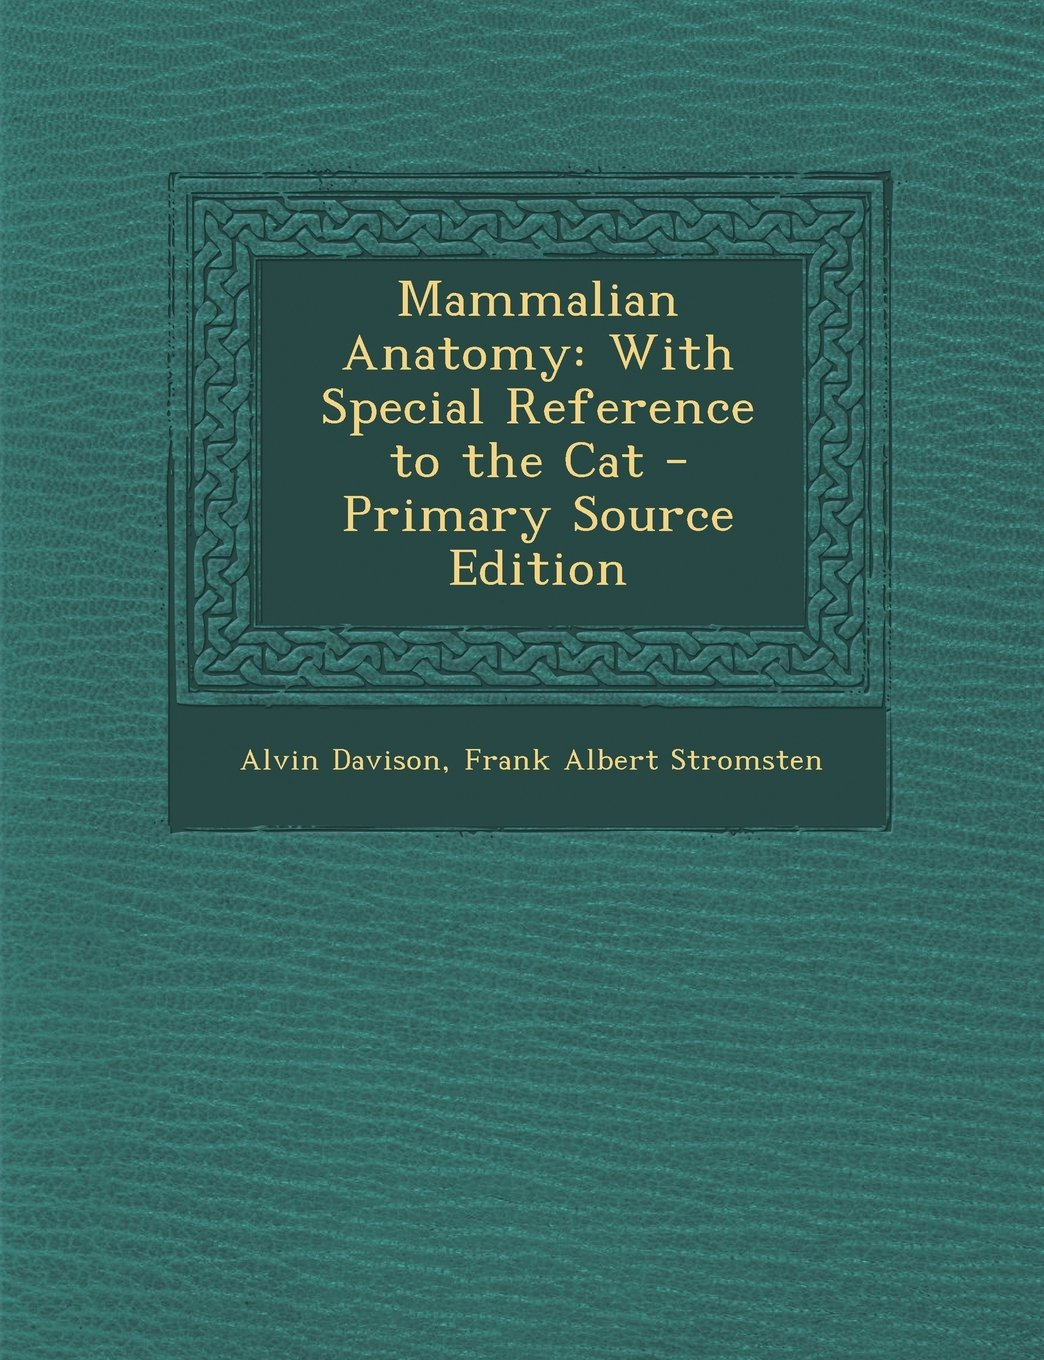 Mammalian Anatomy: With Special Reference to the Cat - Primary ...